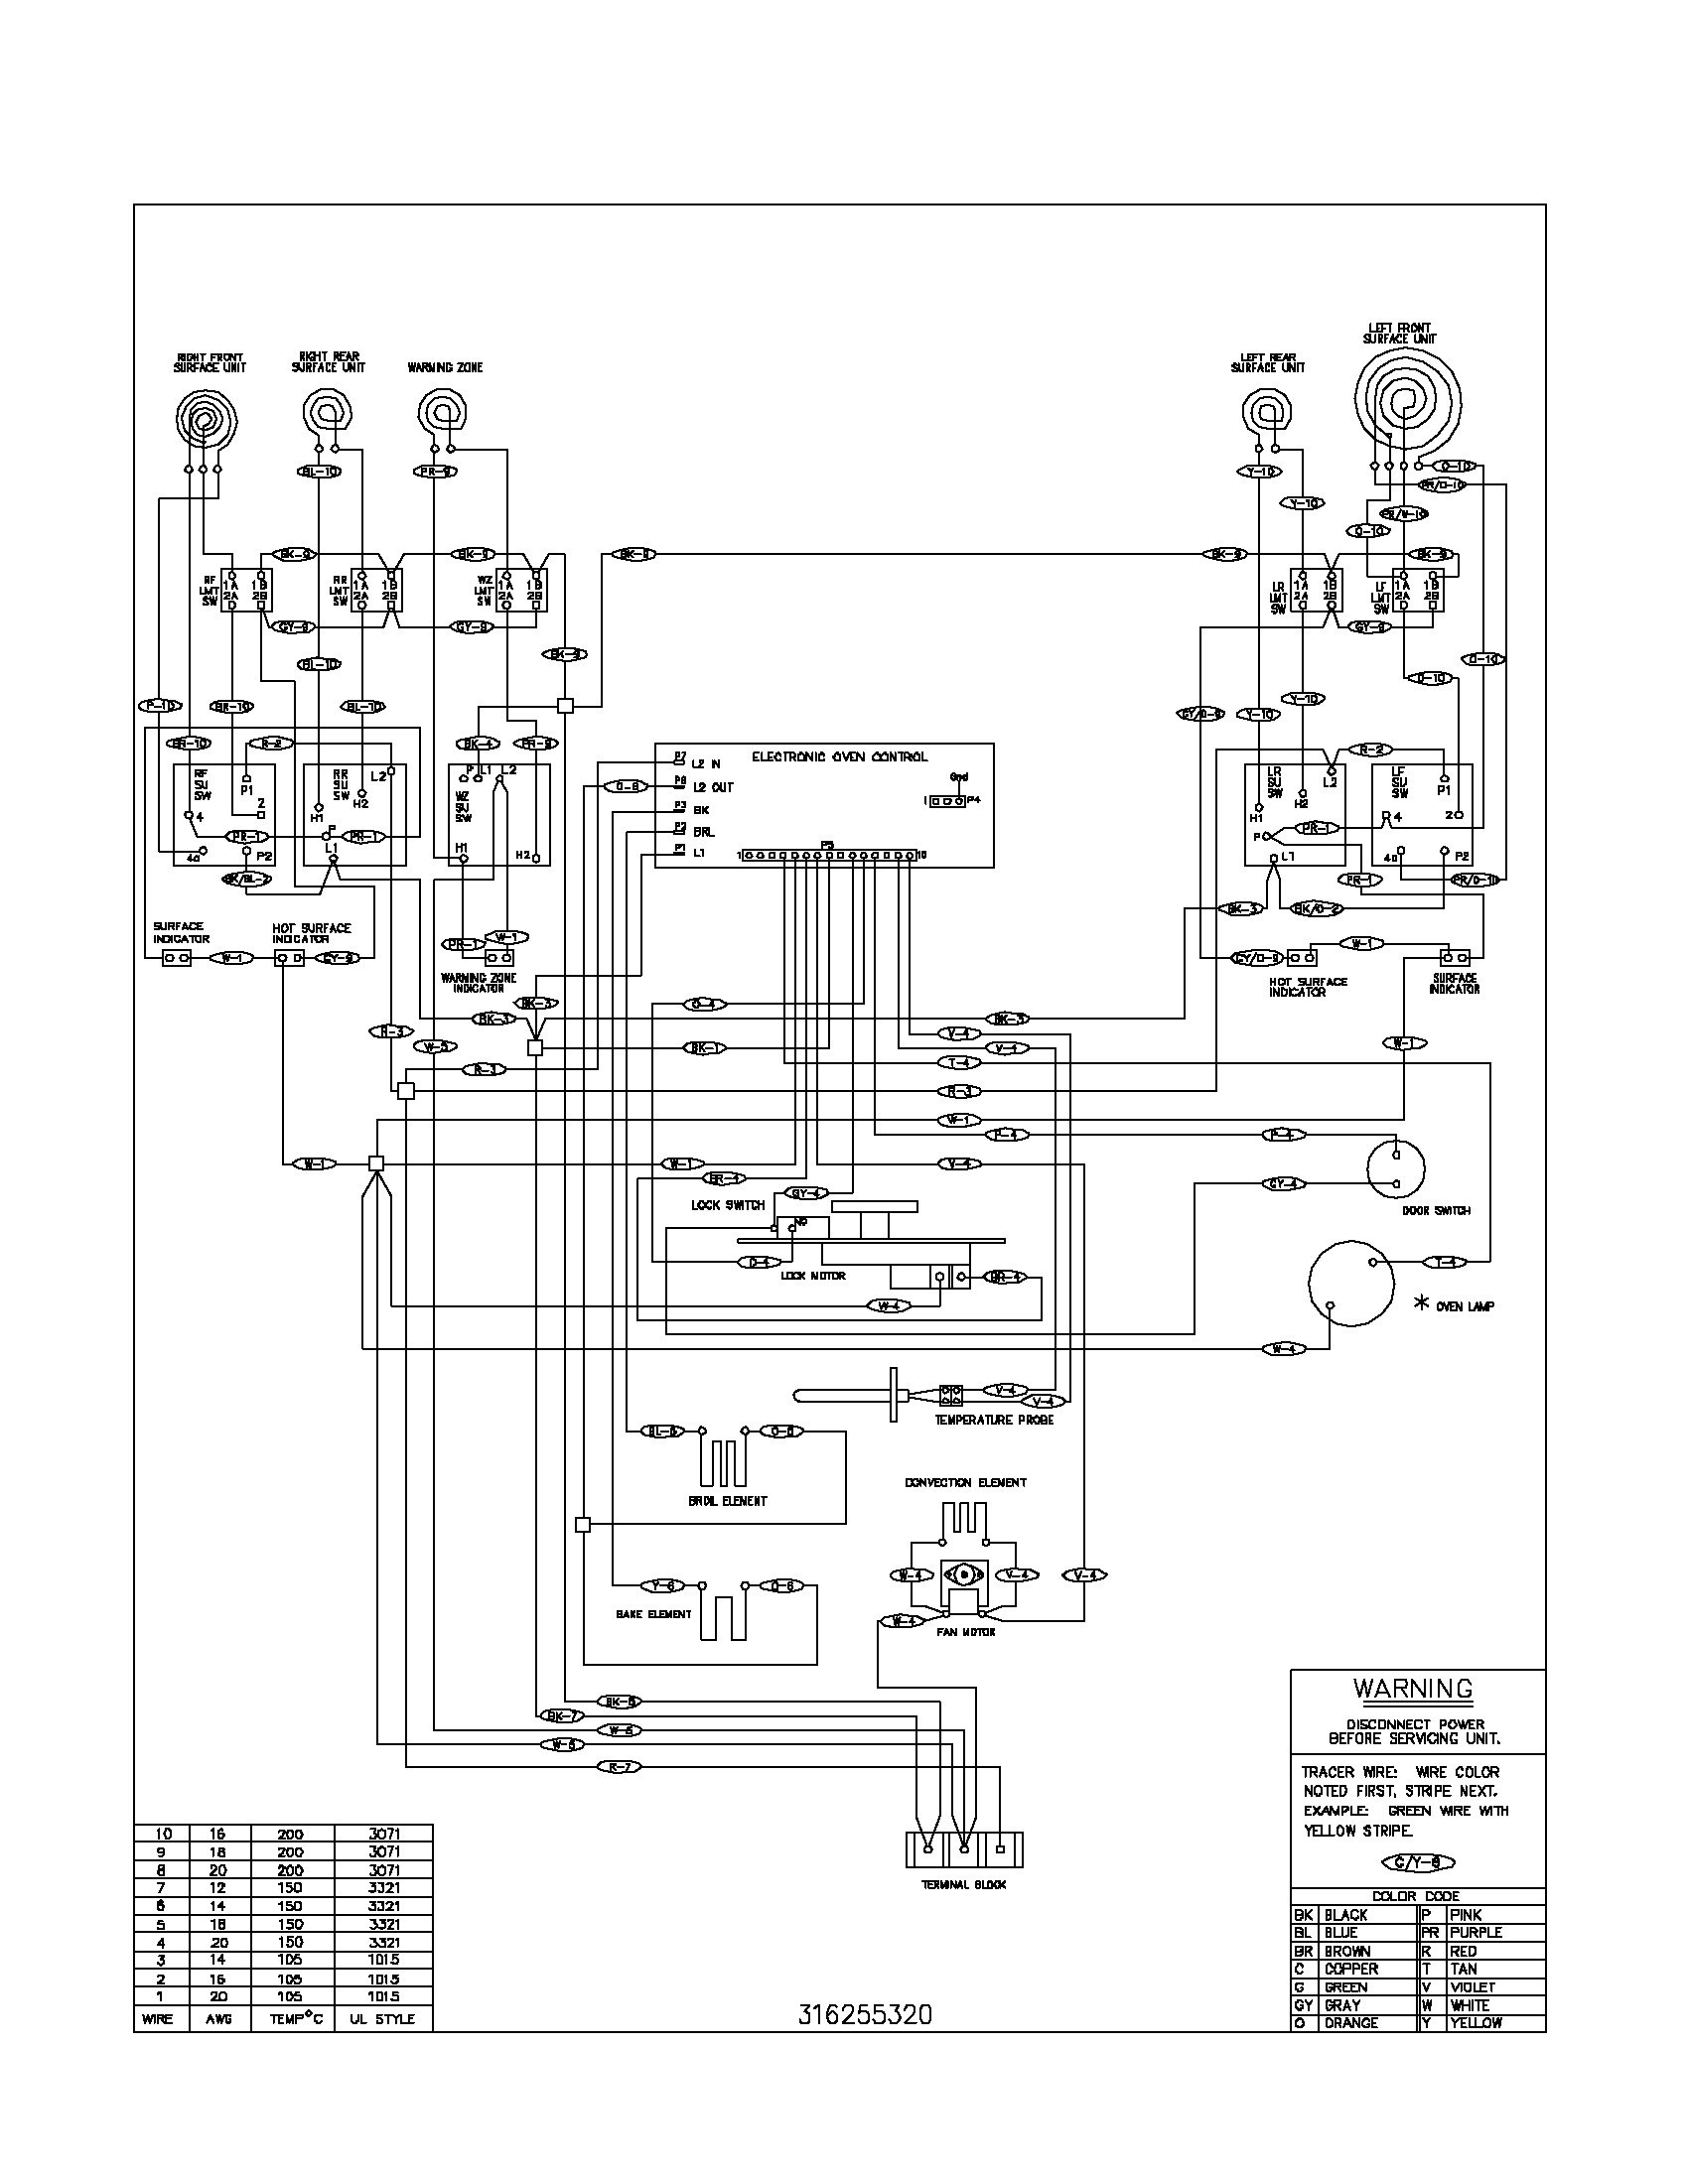 frigidaire stove wiring diagram Download-Wiring Diagram for Electric Stove Valid Electric Stove Wiring Diagram Lovely Cool Baking Oven Inside Range 1-b